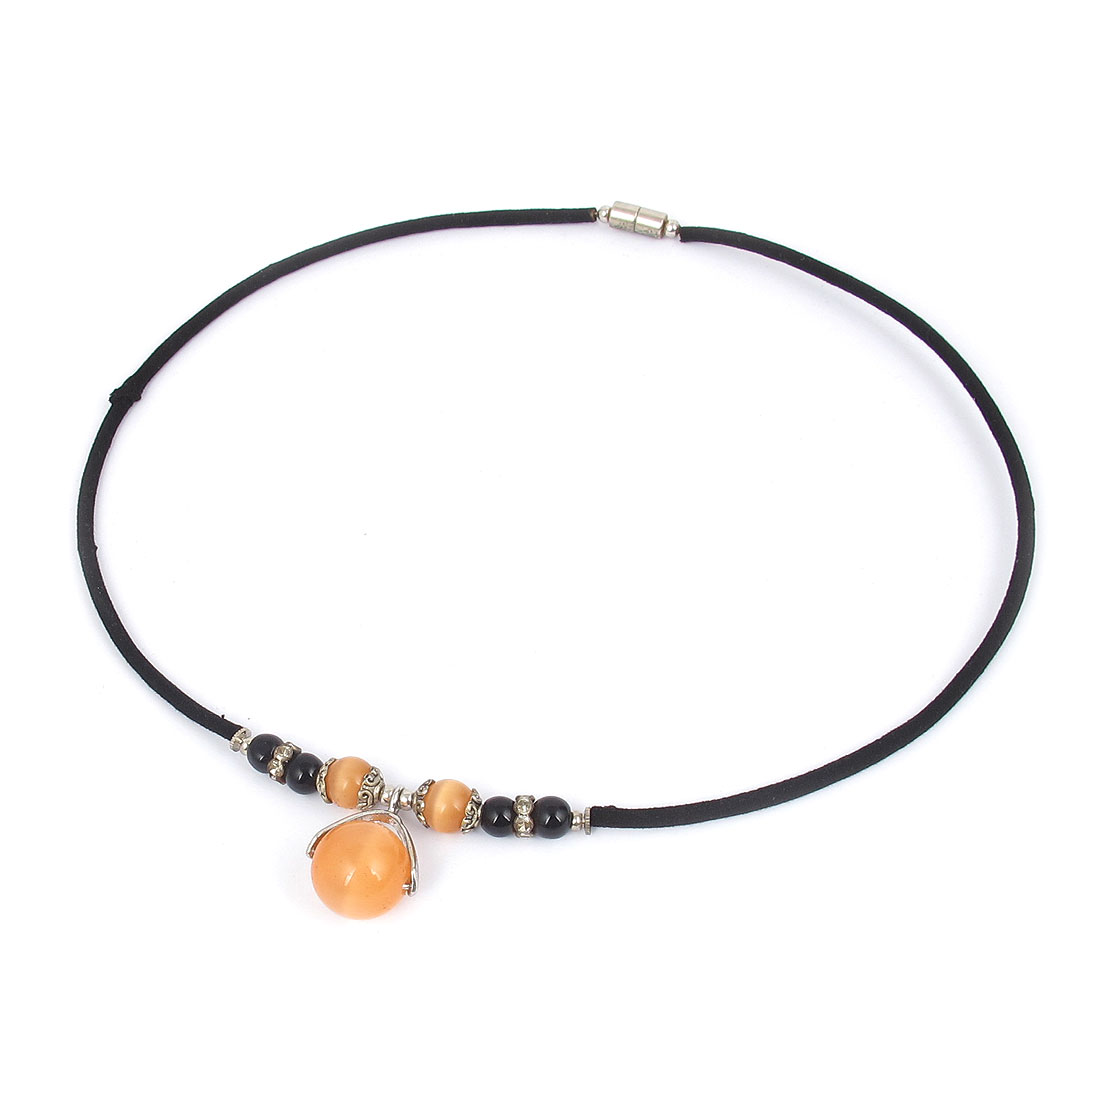 14mm OD Round Opal Bead Pendant Neck Ornament Necklace Black Pink Orange for Women